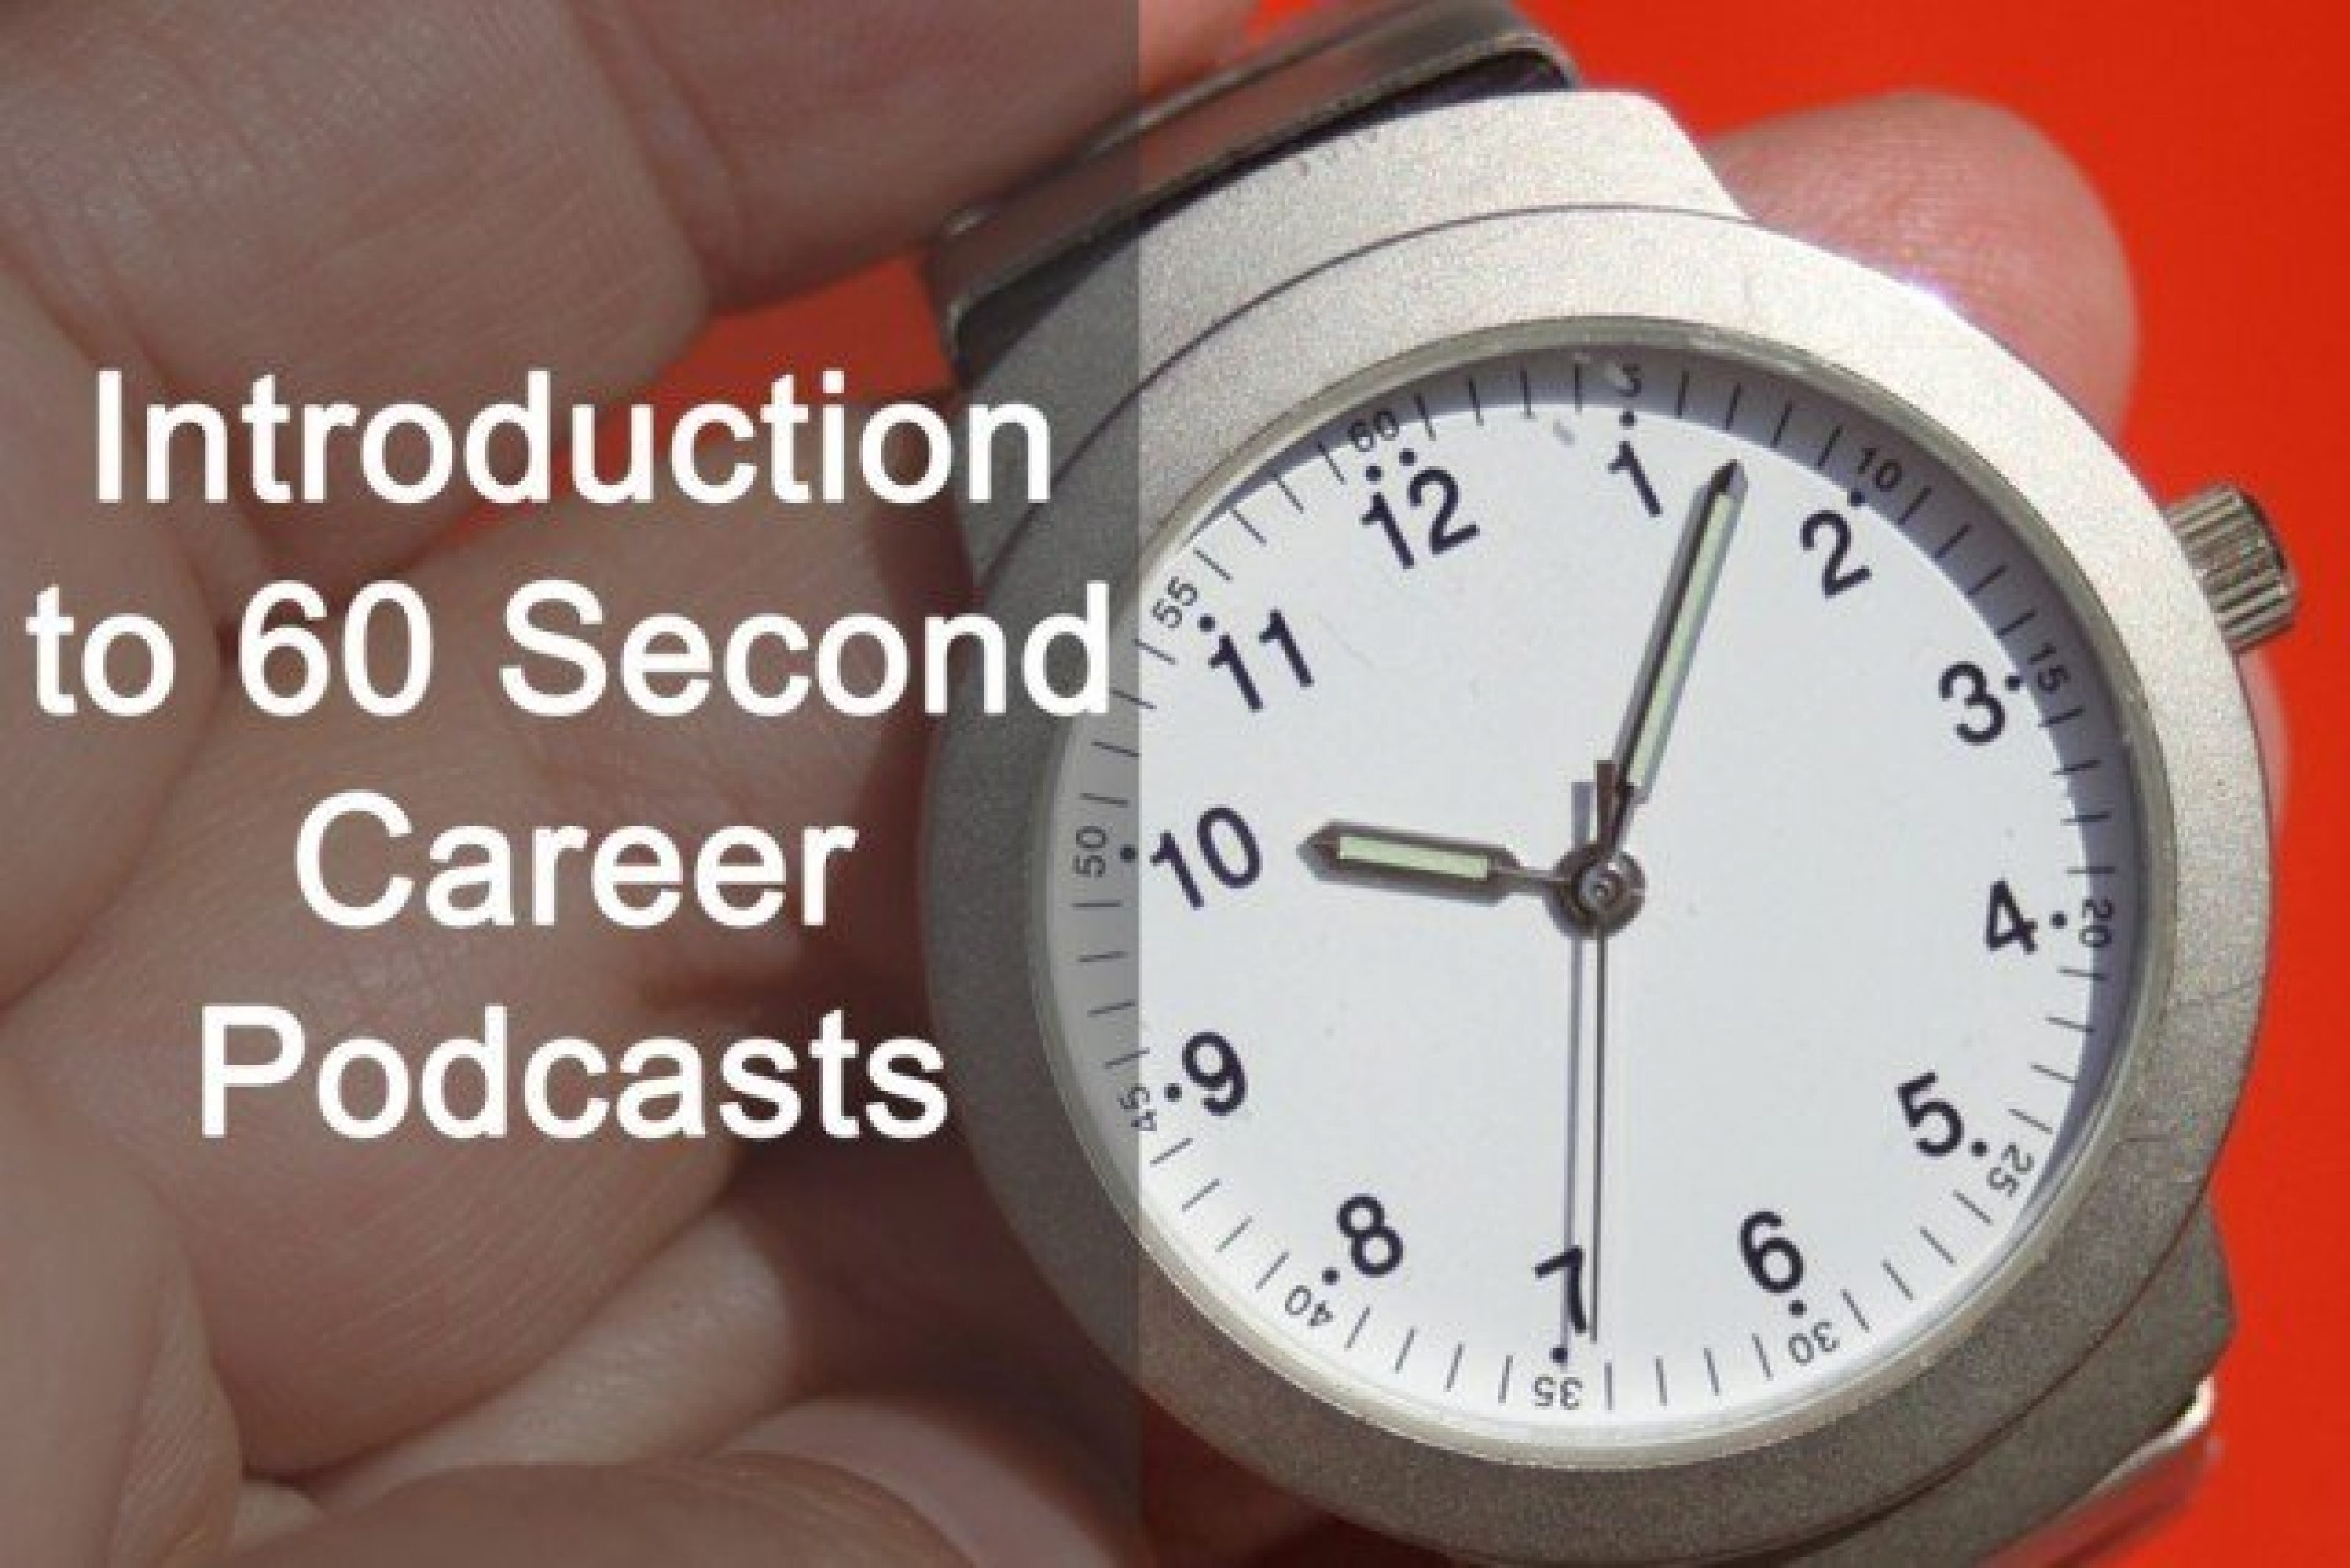 Introduction to 60 Second Career Podcasts